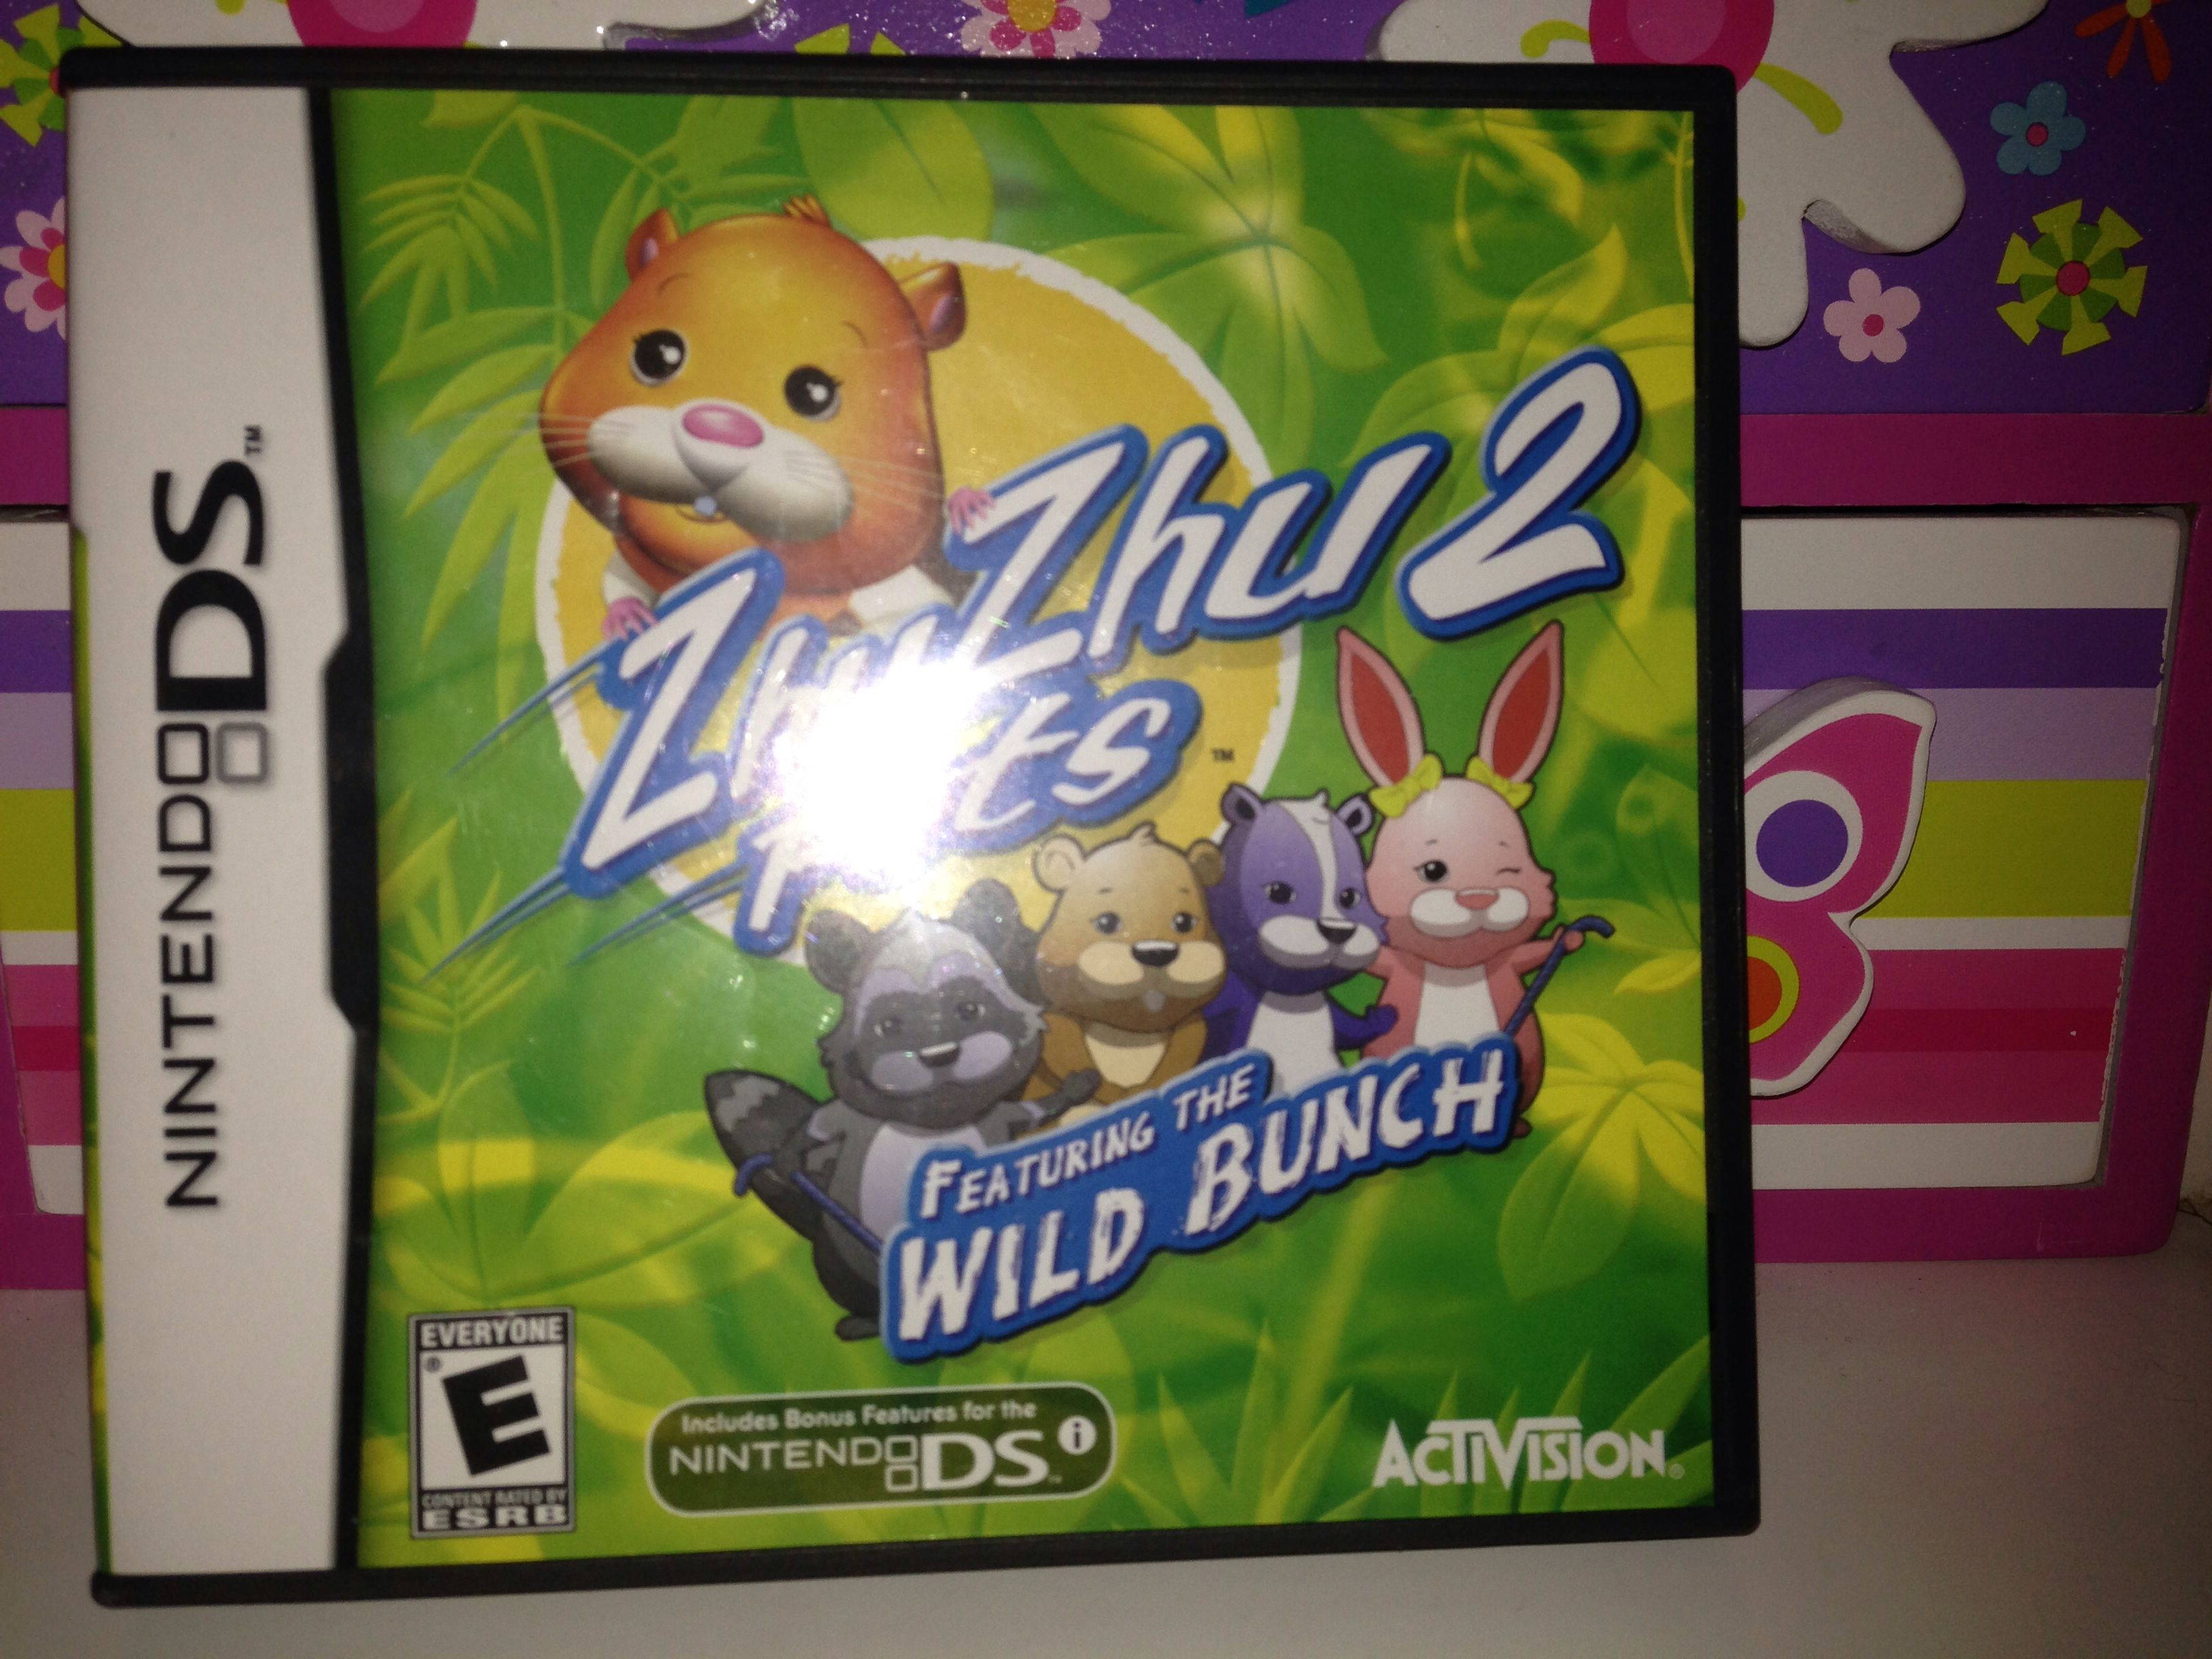 Pin By Lpso Lop Rabbit On Zhu Zhu Pets Frosted Flakes Cereal Box Frosted Flakes Cereal